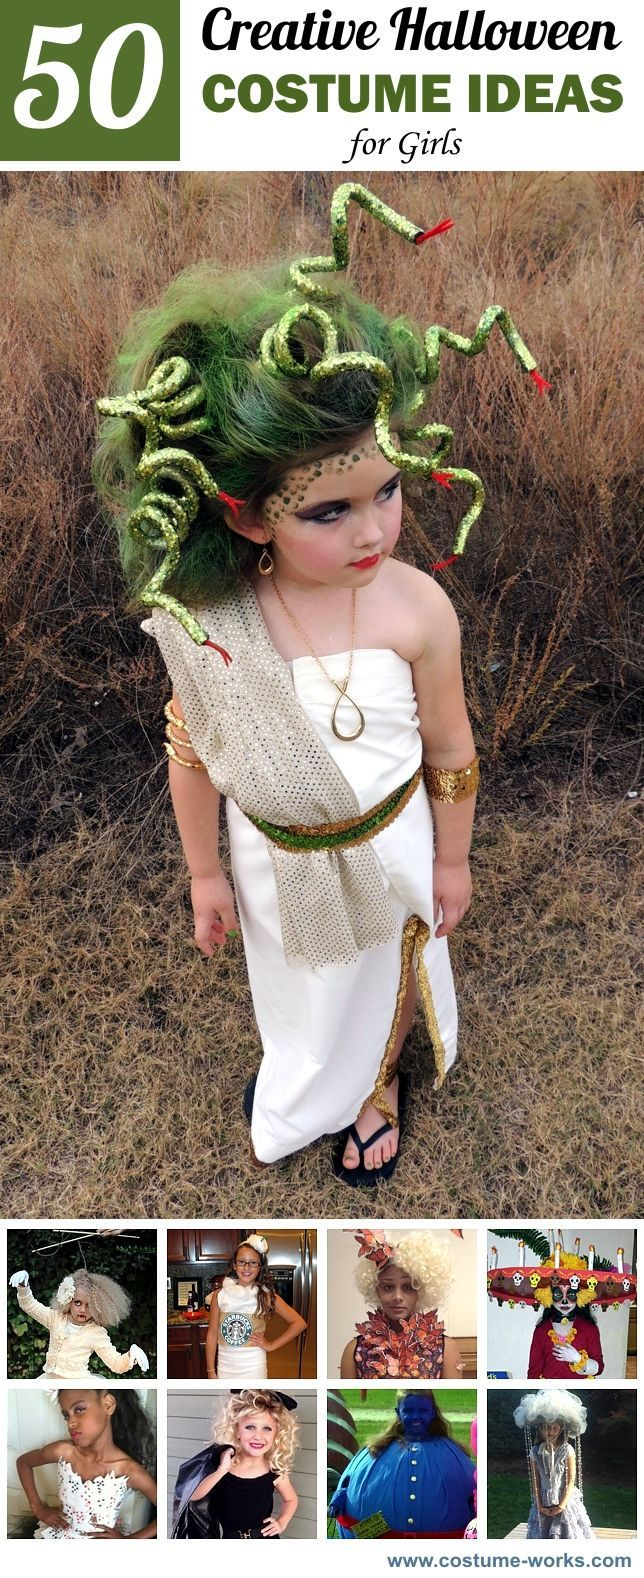 Halloween is one of the most magical times of the year. It's also a time when creative Halloween costumes pop up for a fun night of trick-or-treating. If you're looking for creative Halloween costume ideas, see what other young girls have been turning out this year.